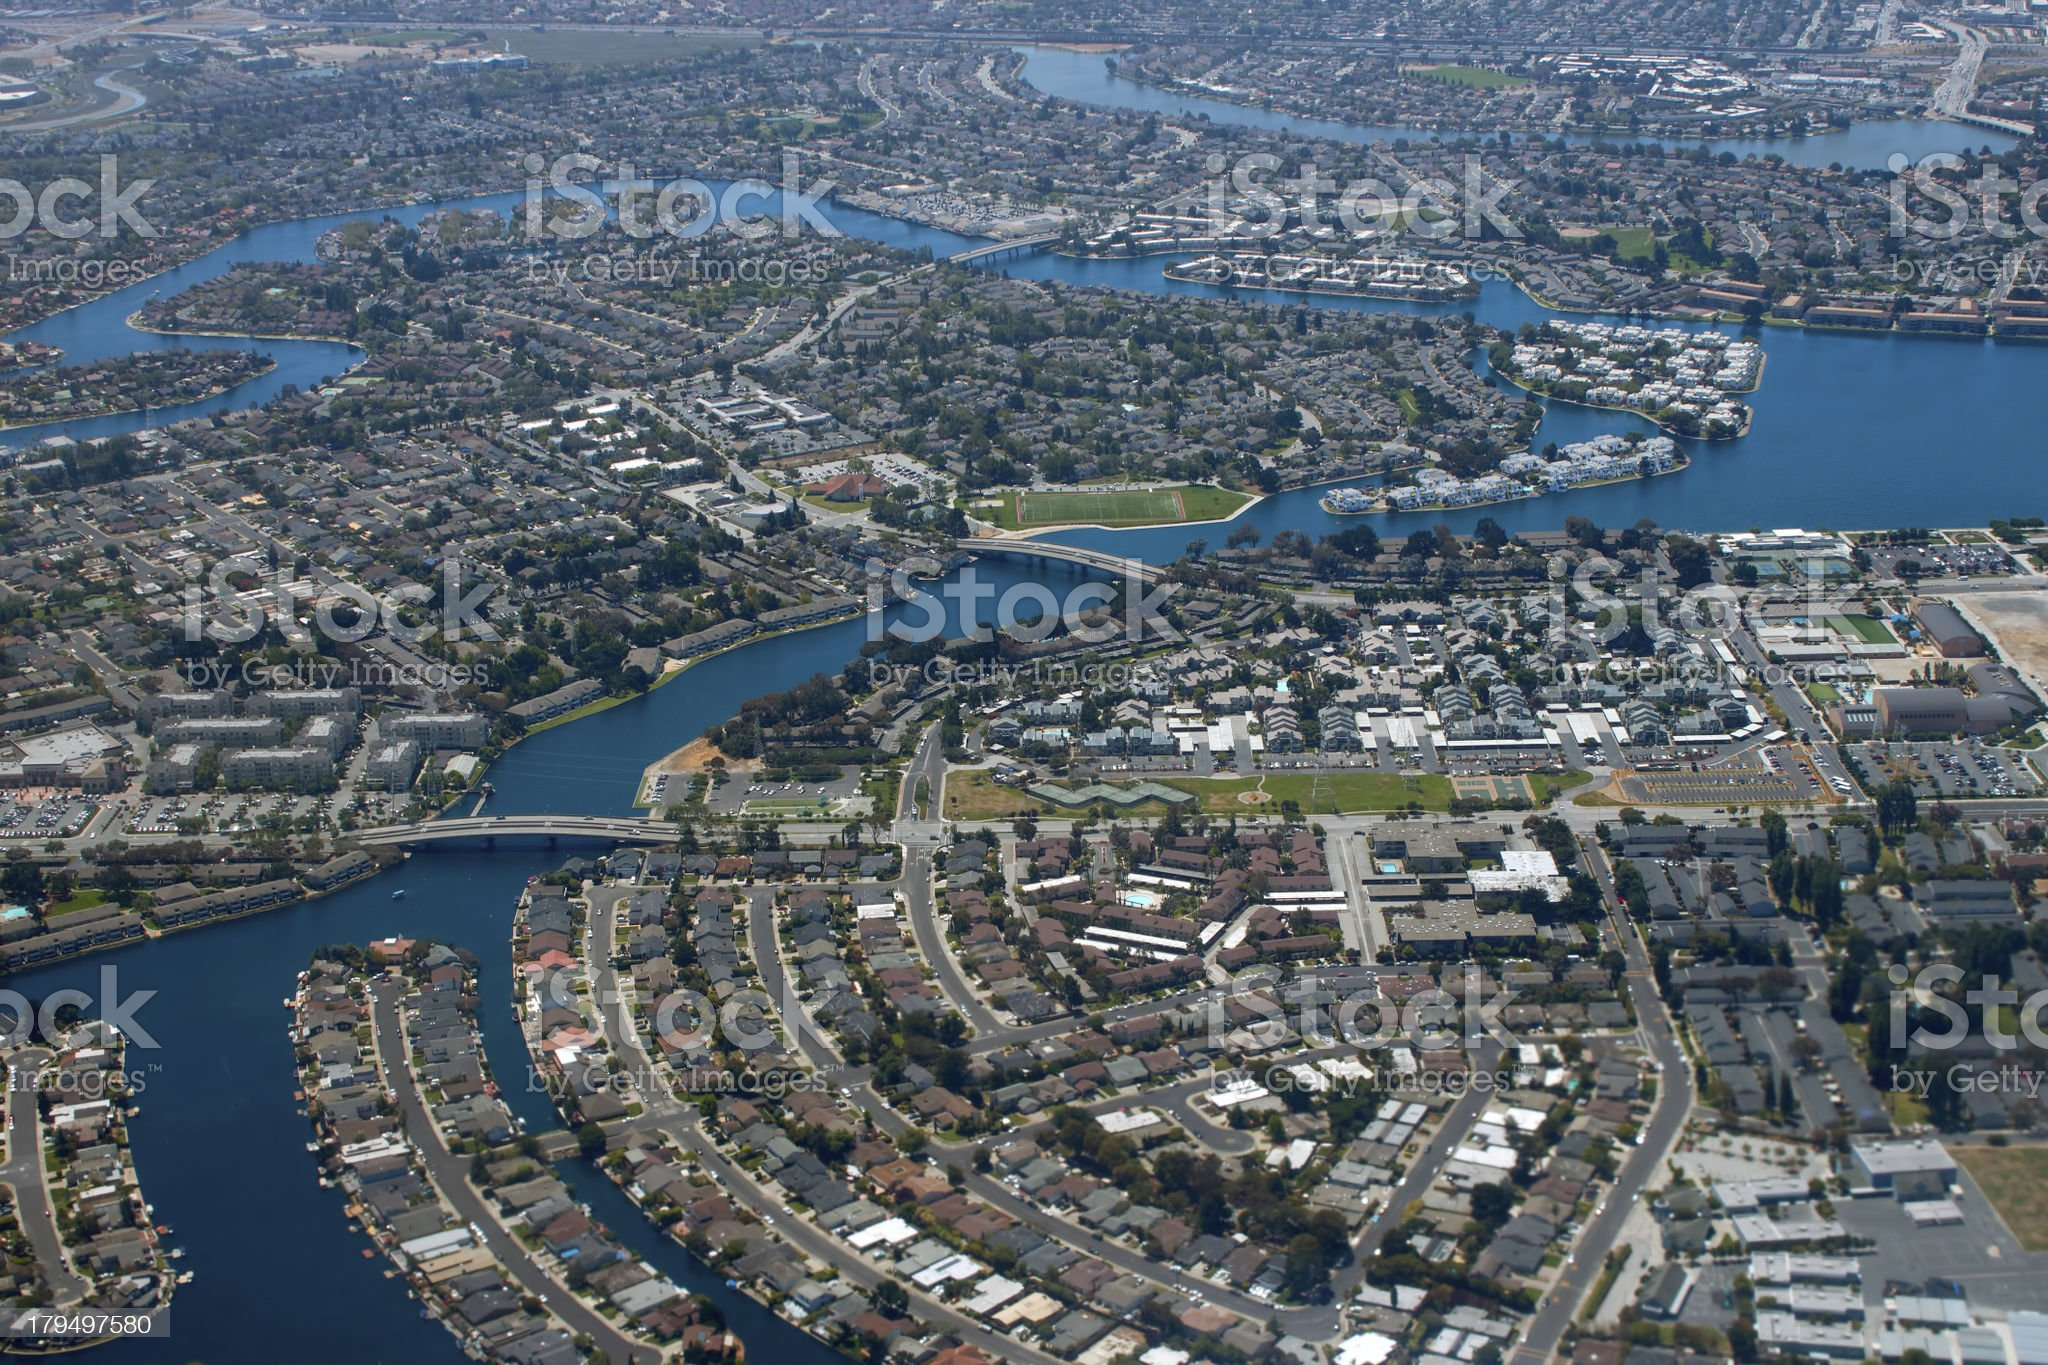 Aerial view of city on a bay royalty-free stock photo